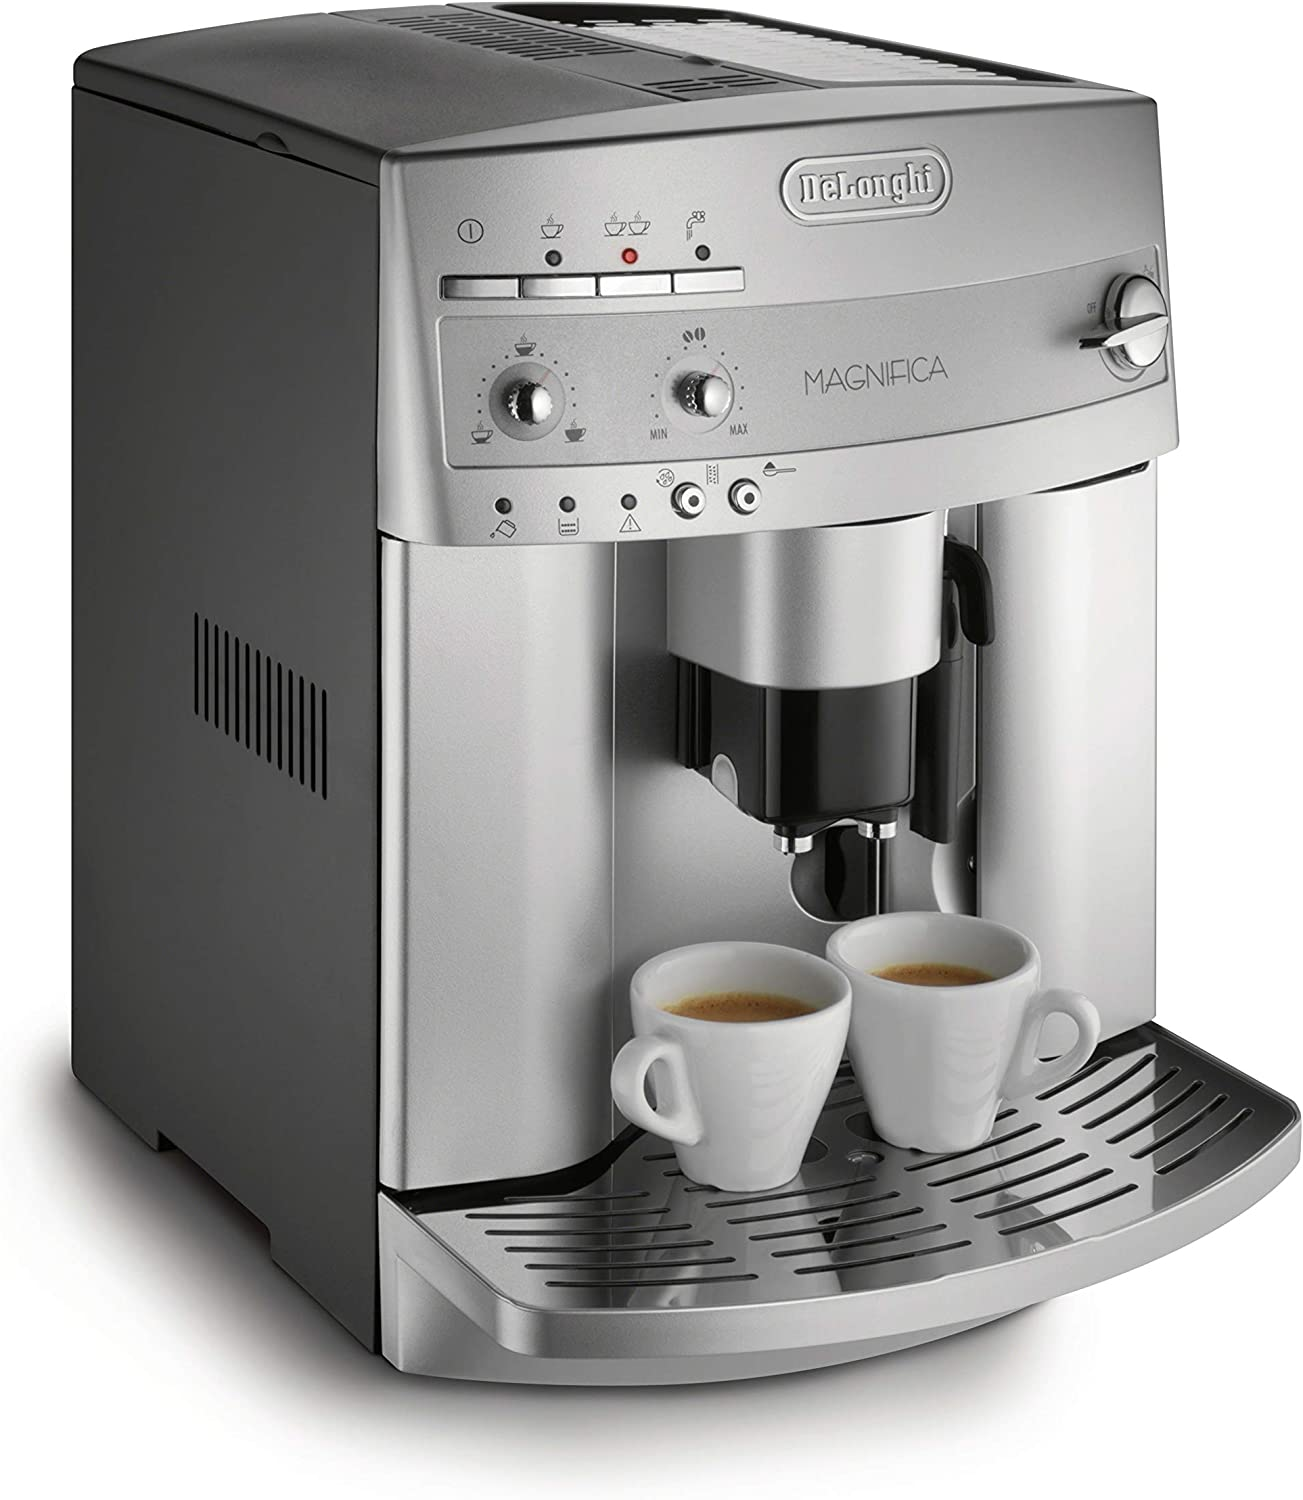 The Best Espresso Machine for Mom - 2021 Ratings & Reviews 11